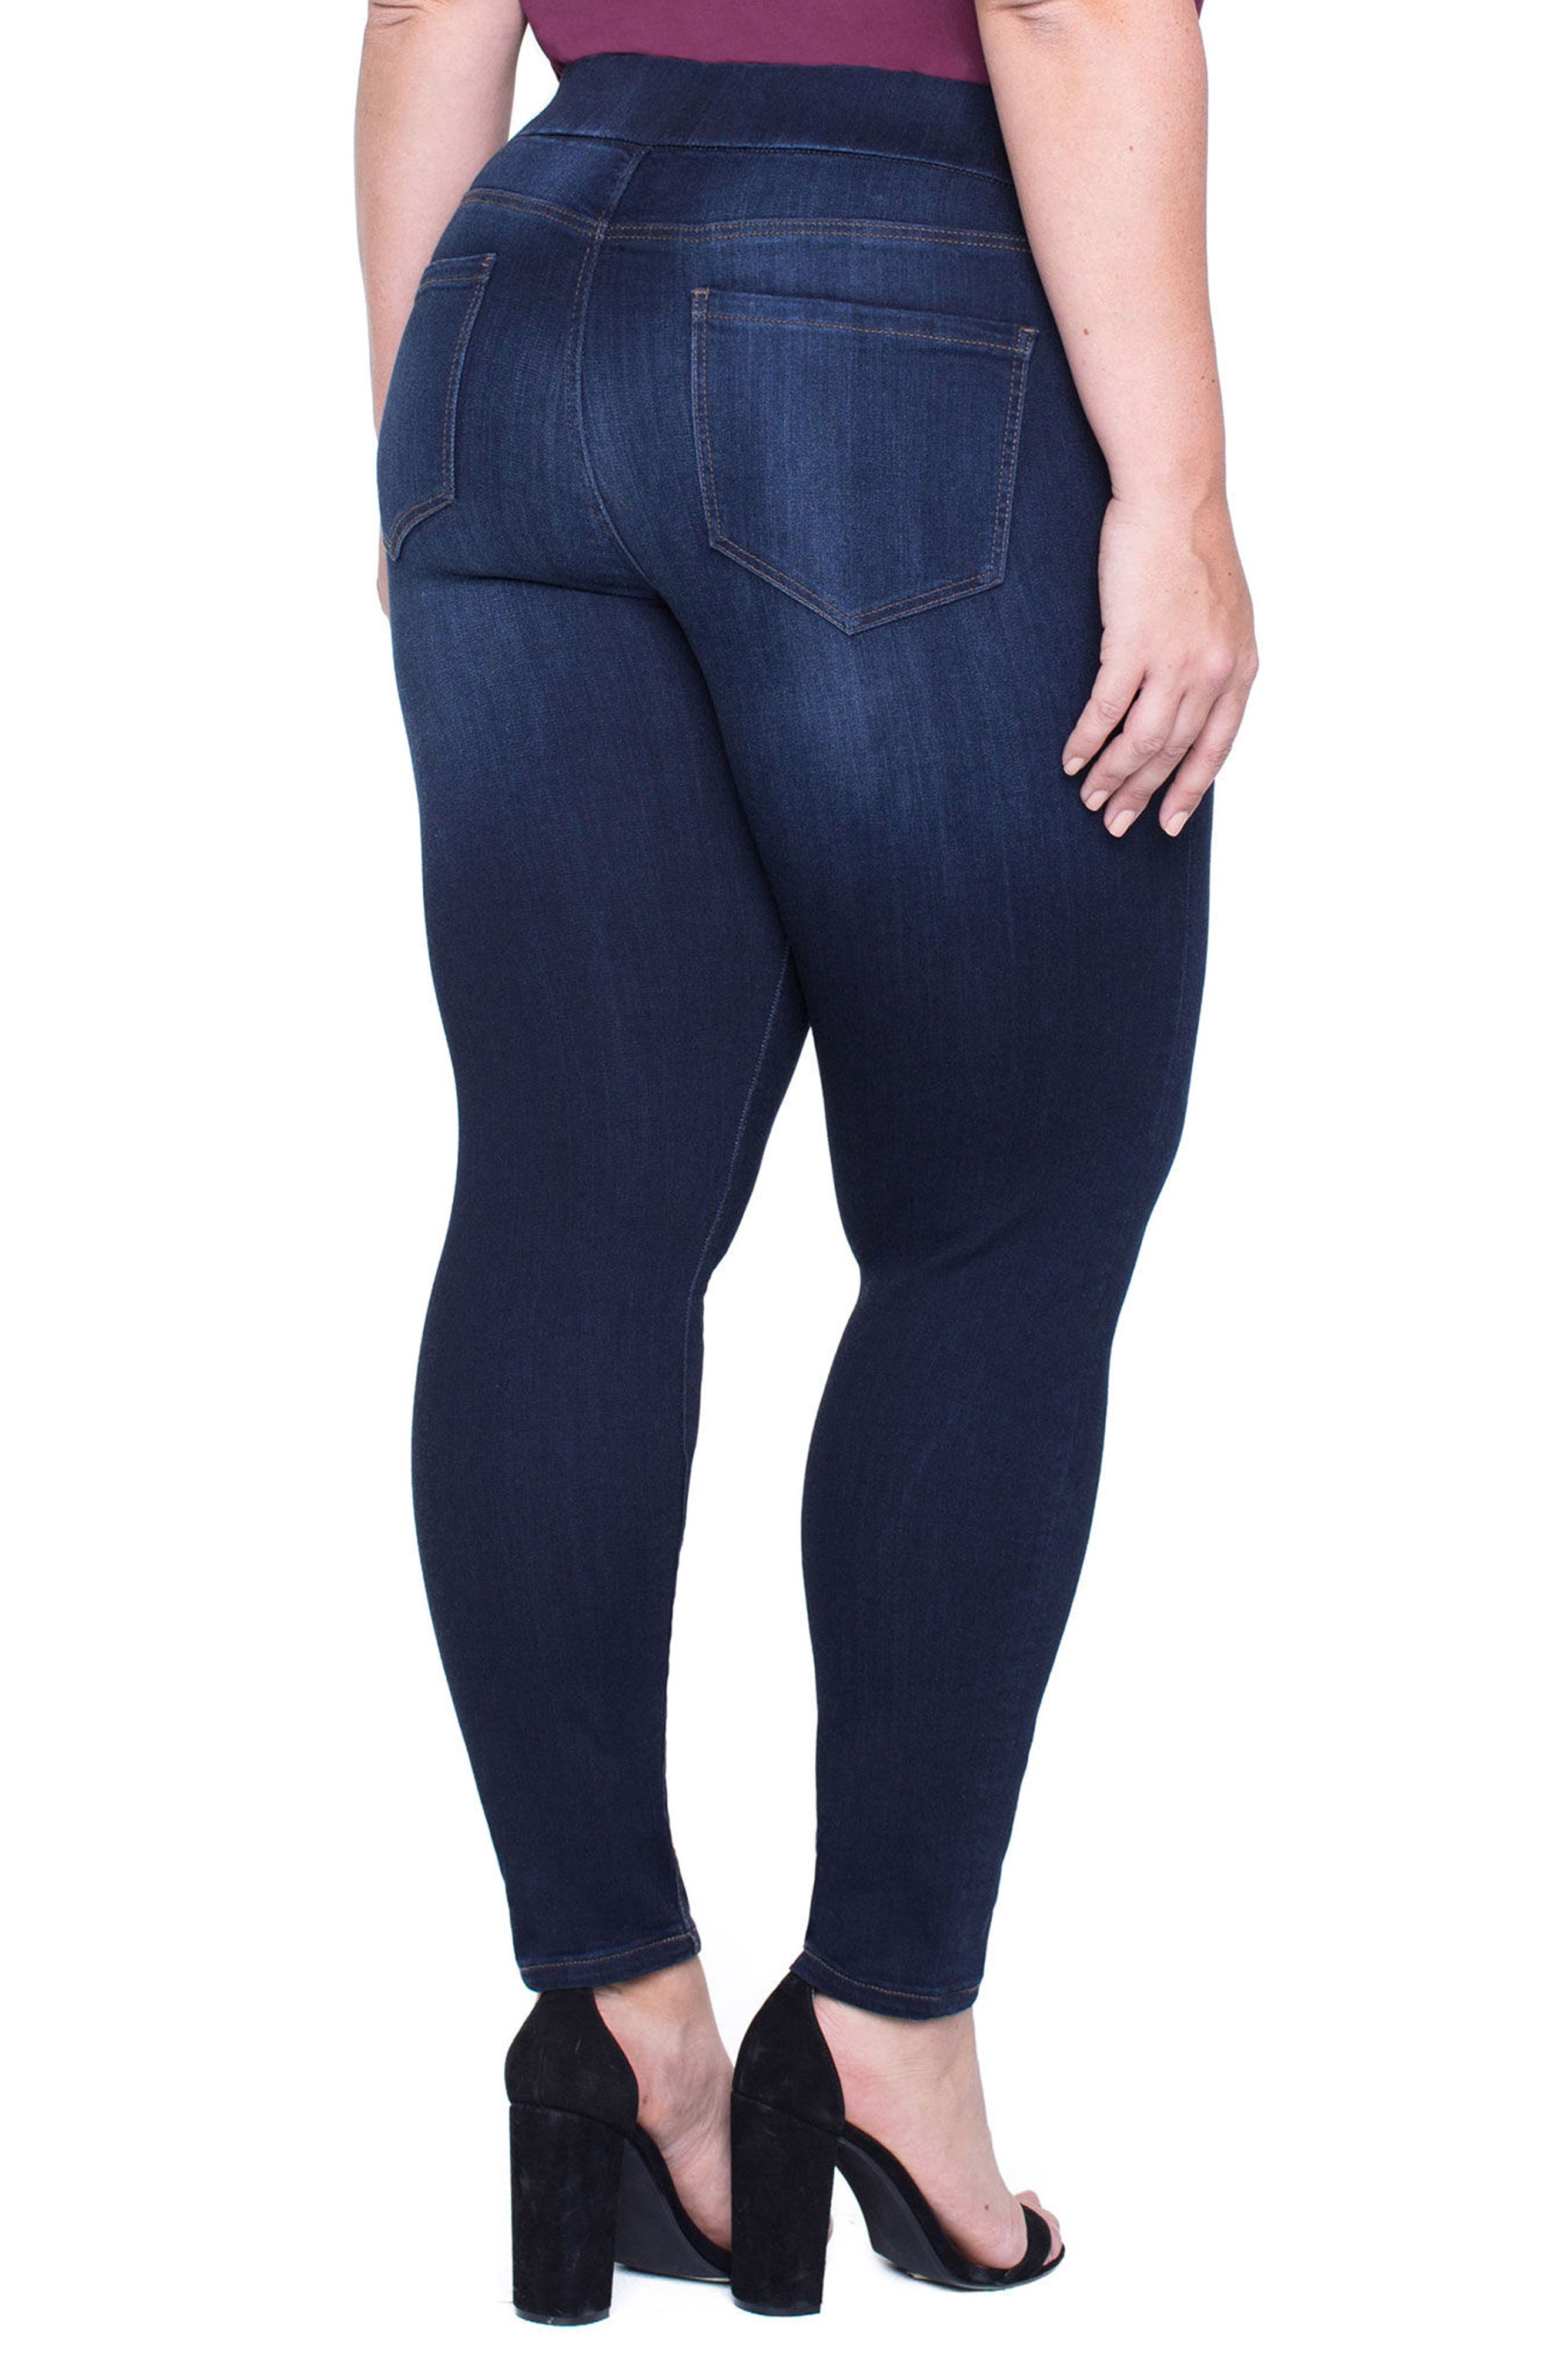 Alternate Image 2  - Liverpool Jeans Company Sienna Pull-On Stretch Ankle Jeans (Plus Size)